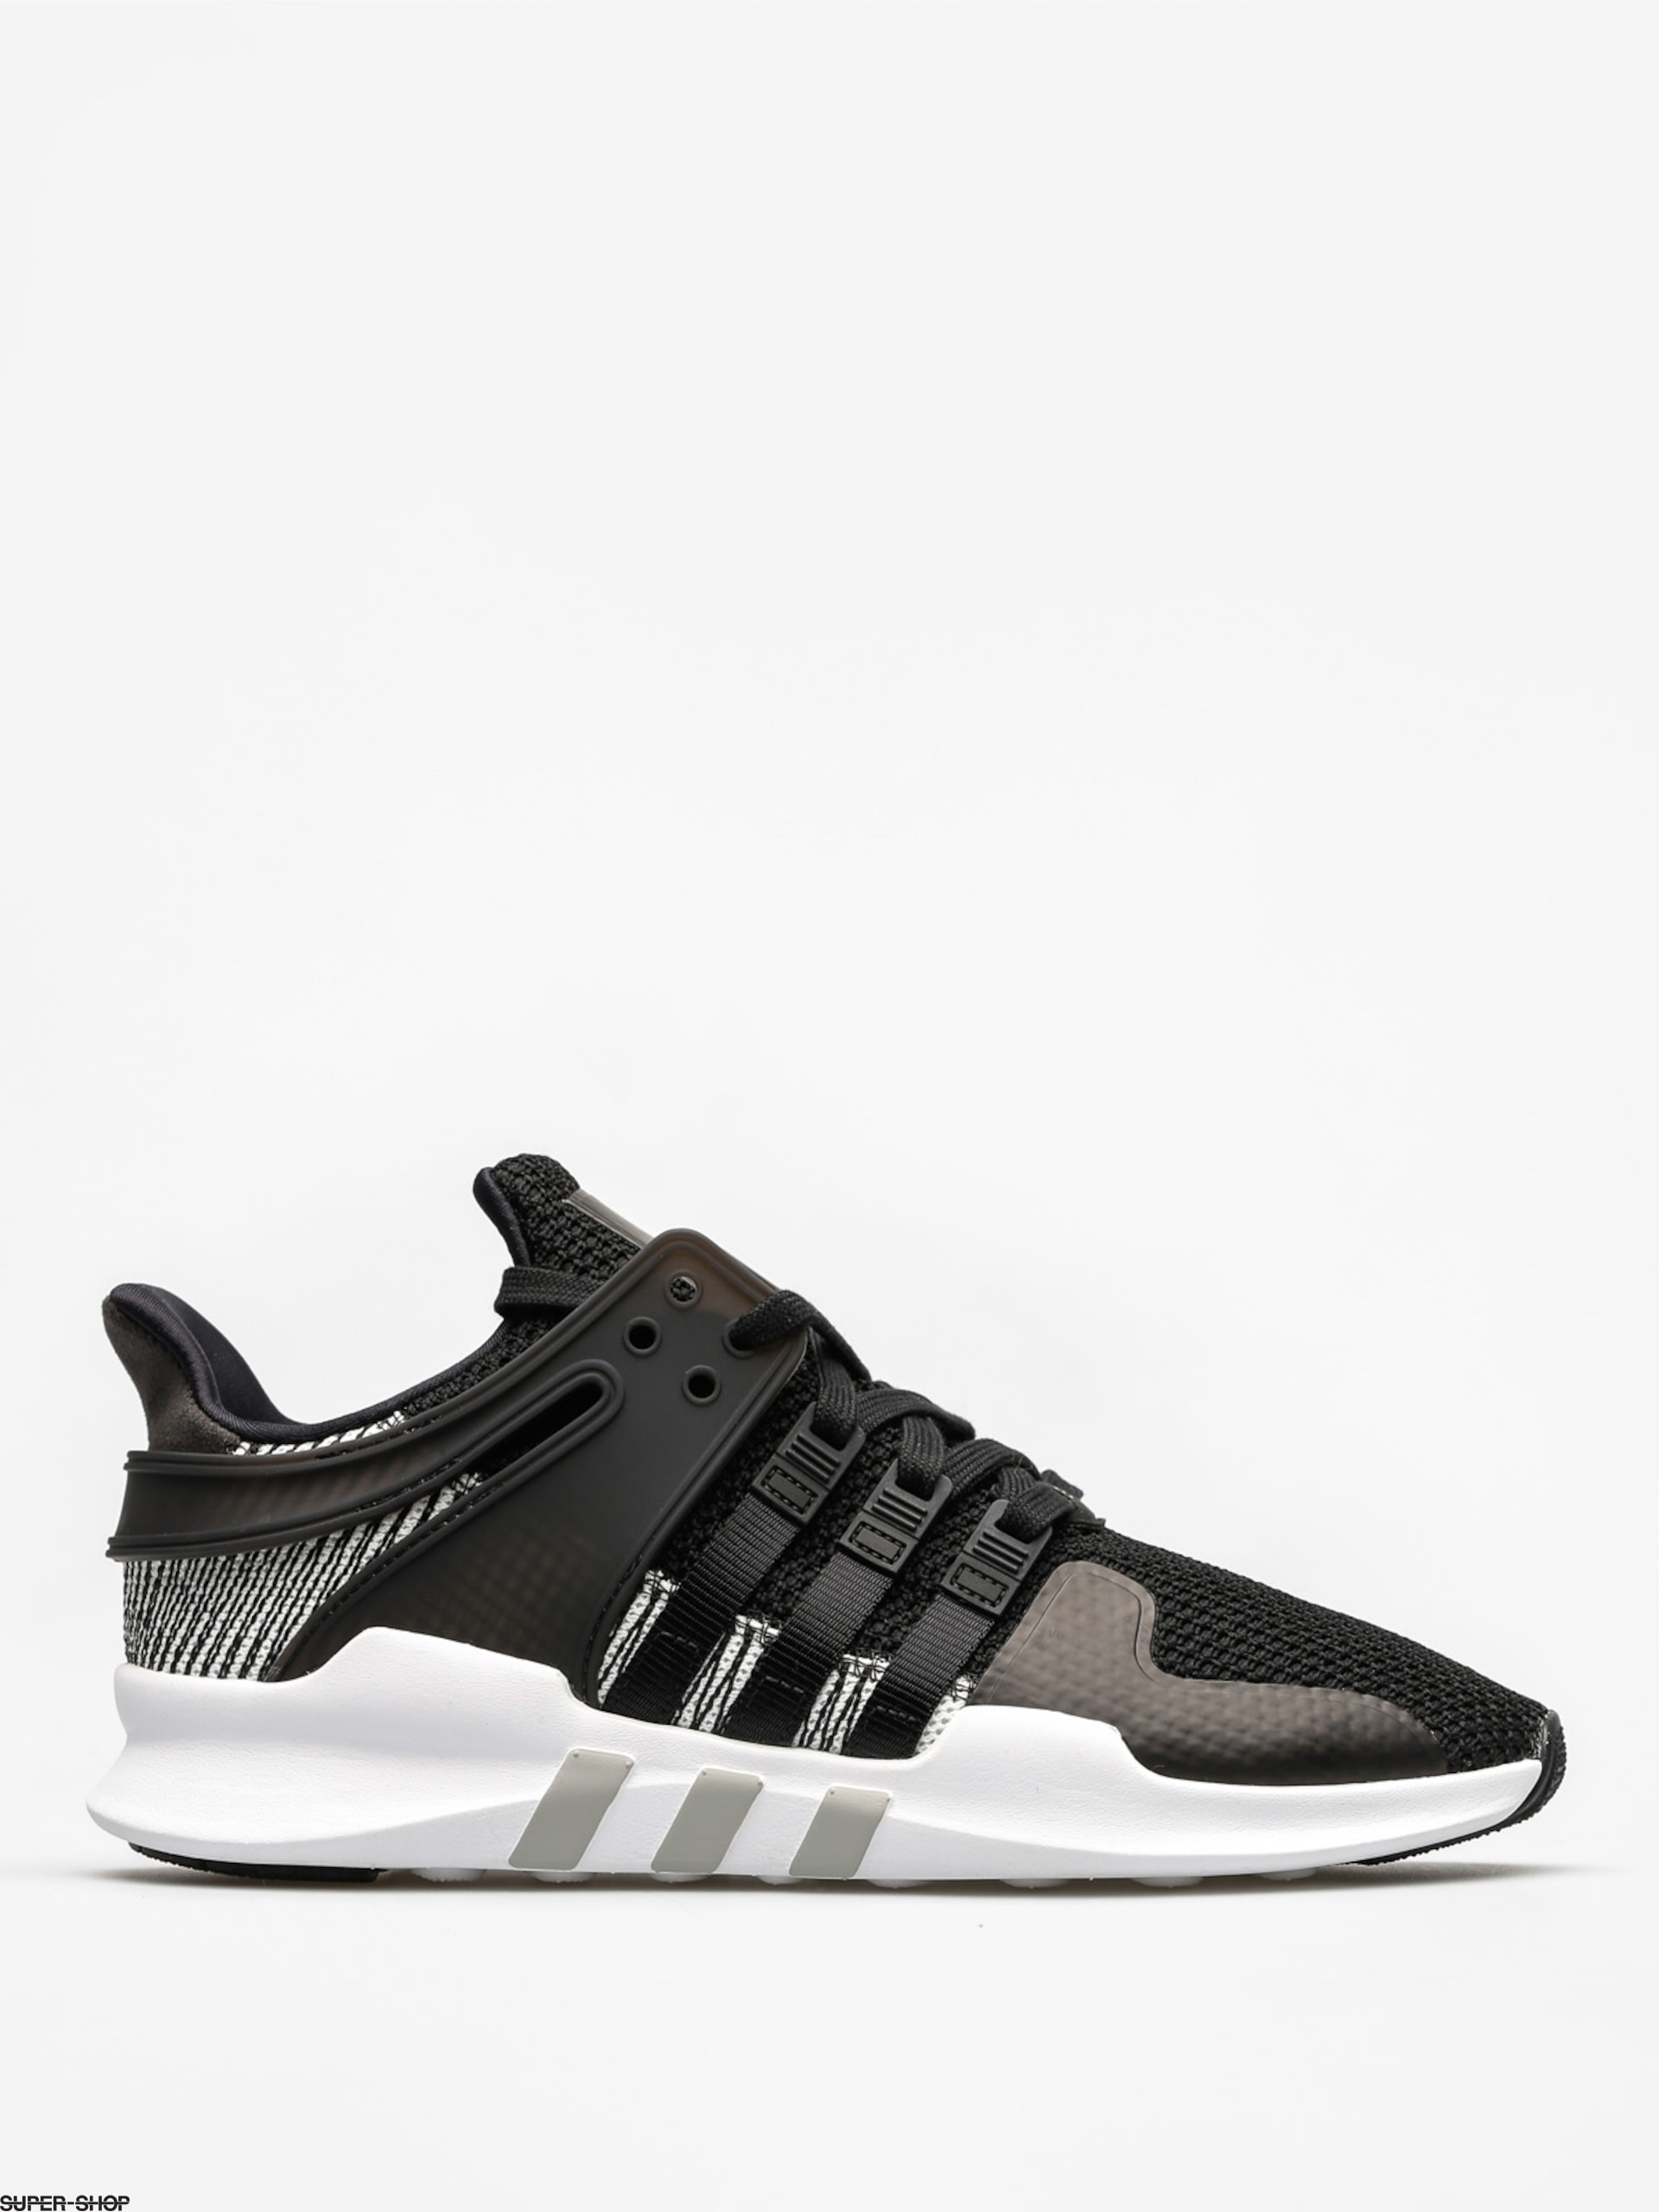 adidas Shoes Eqt Support Adv (core black/core black/ftwr white)